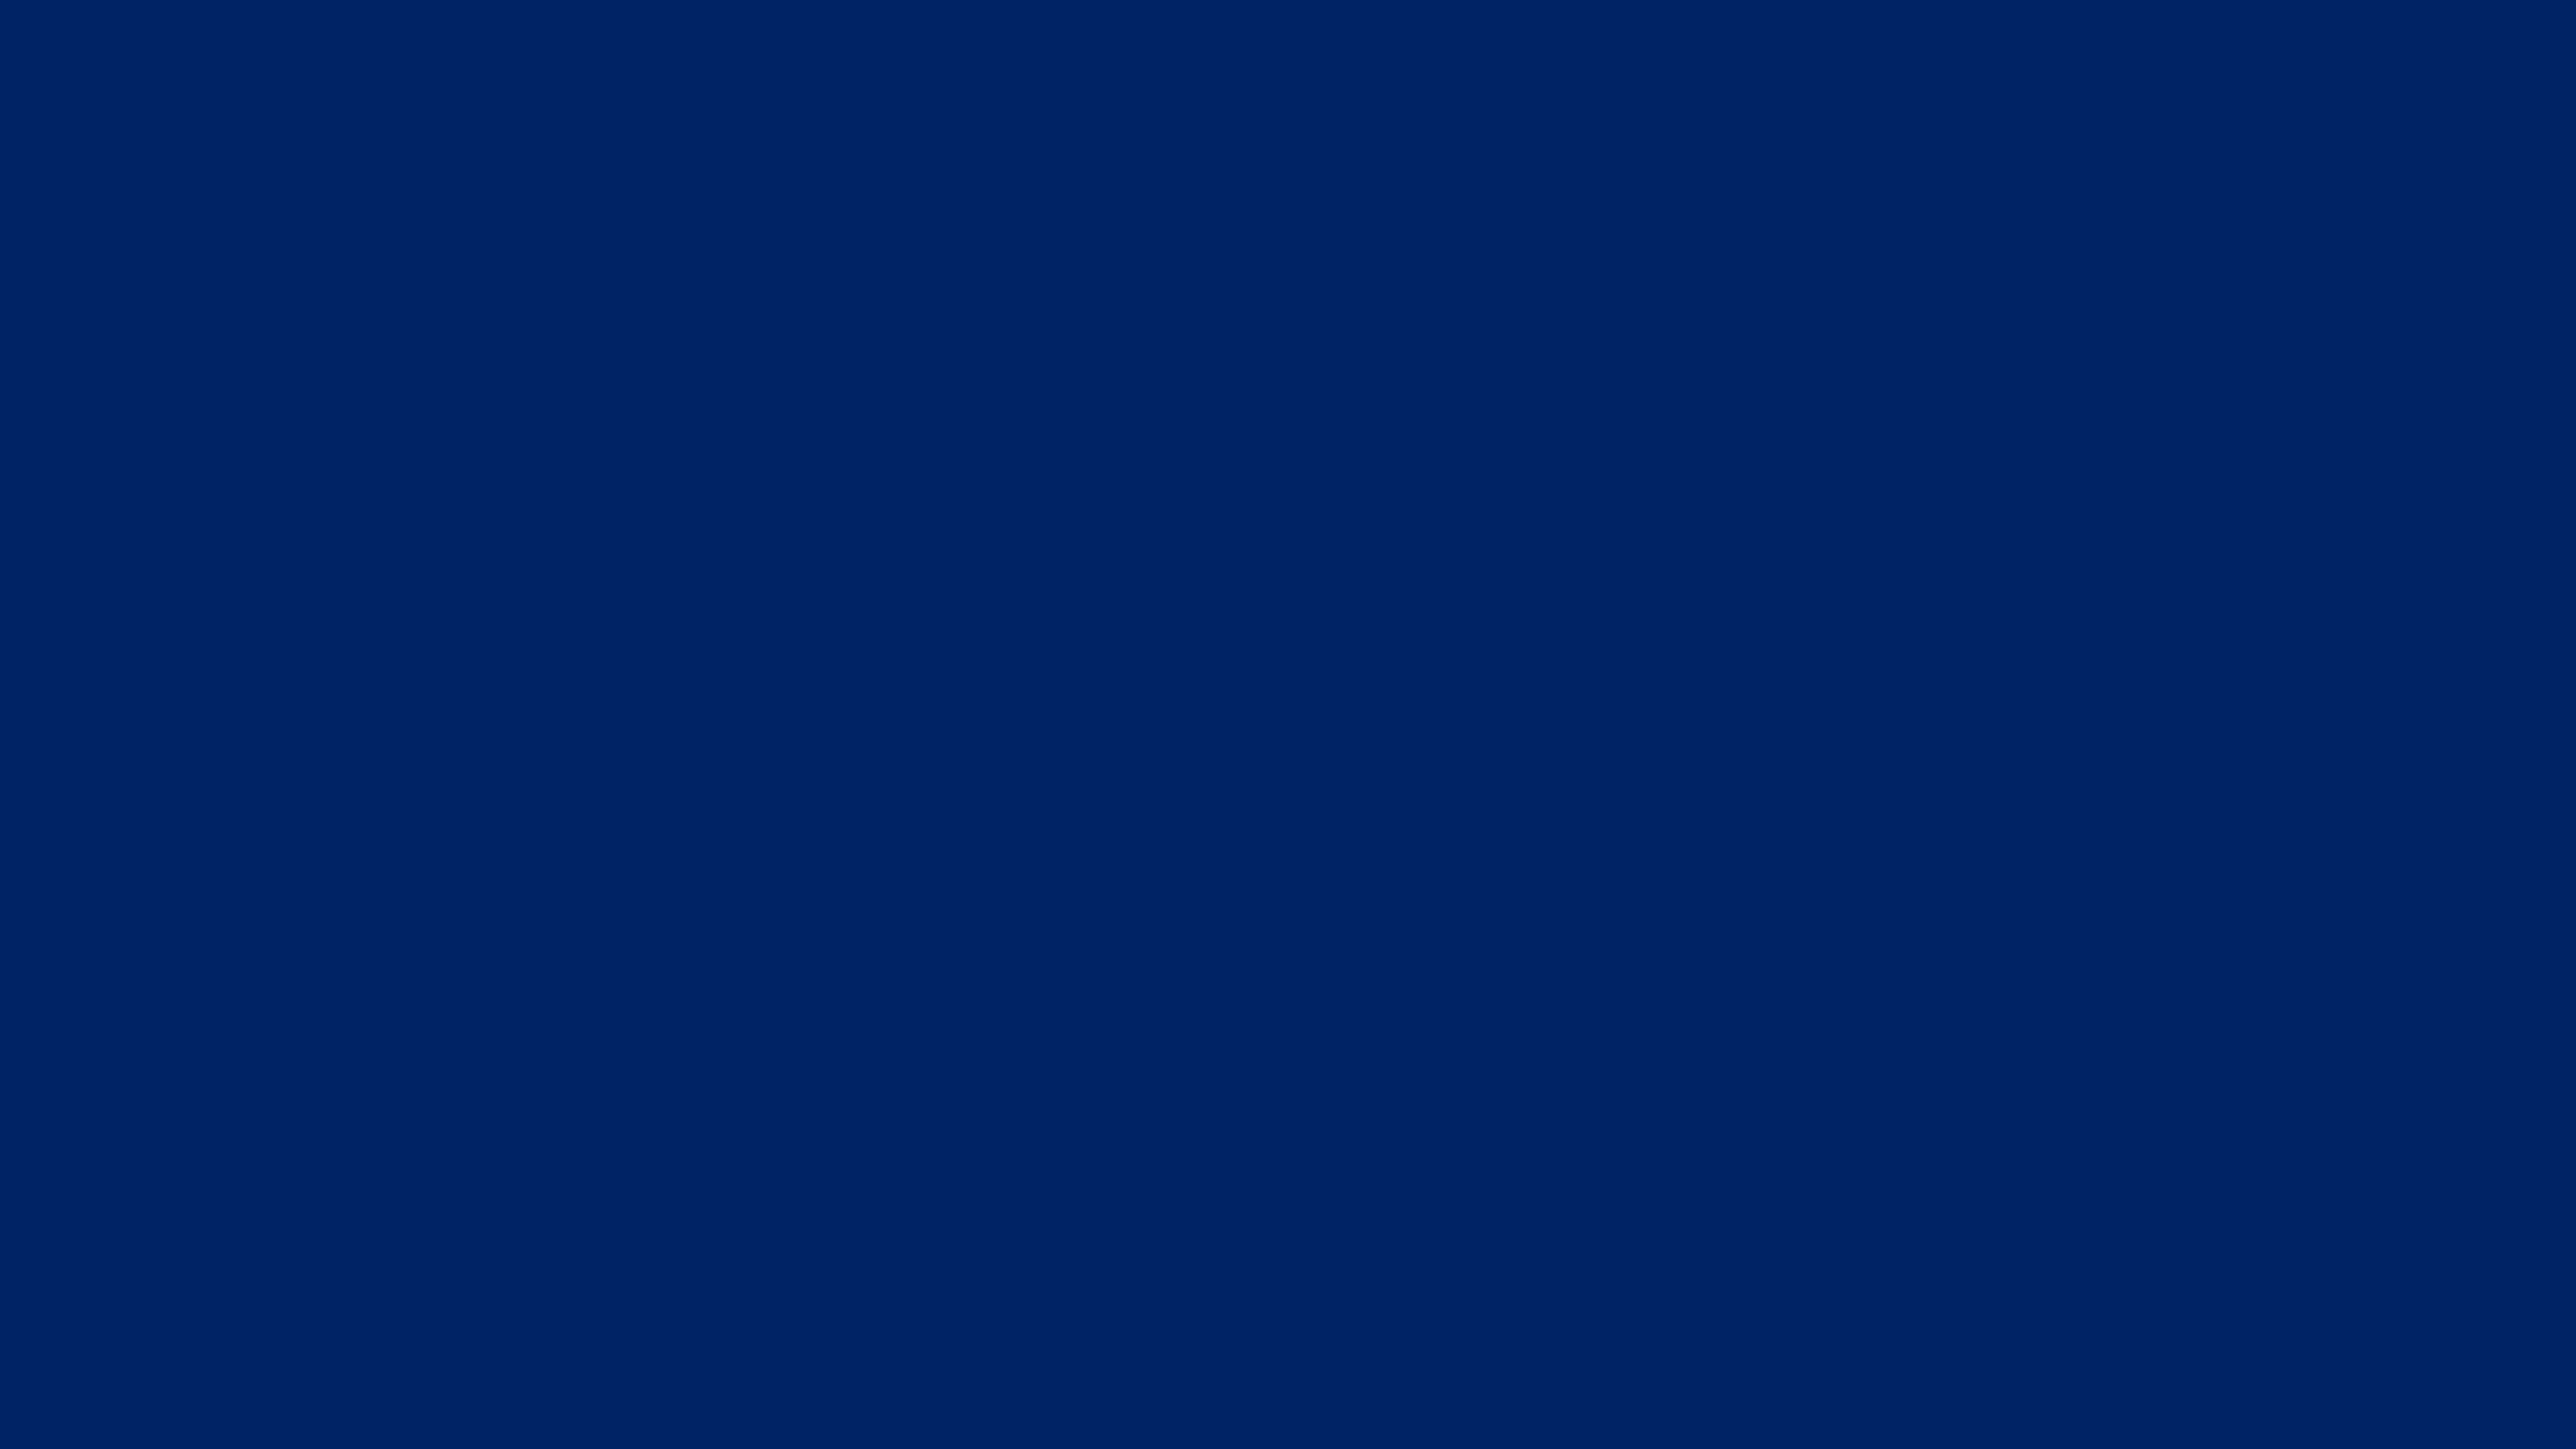 7680x4320 Royal Blue Traditional Solid Color Background